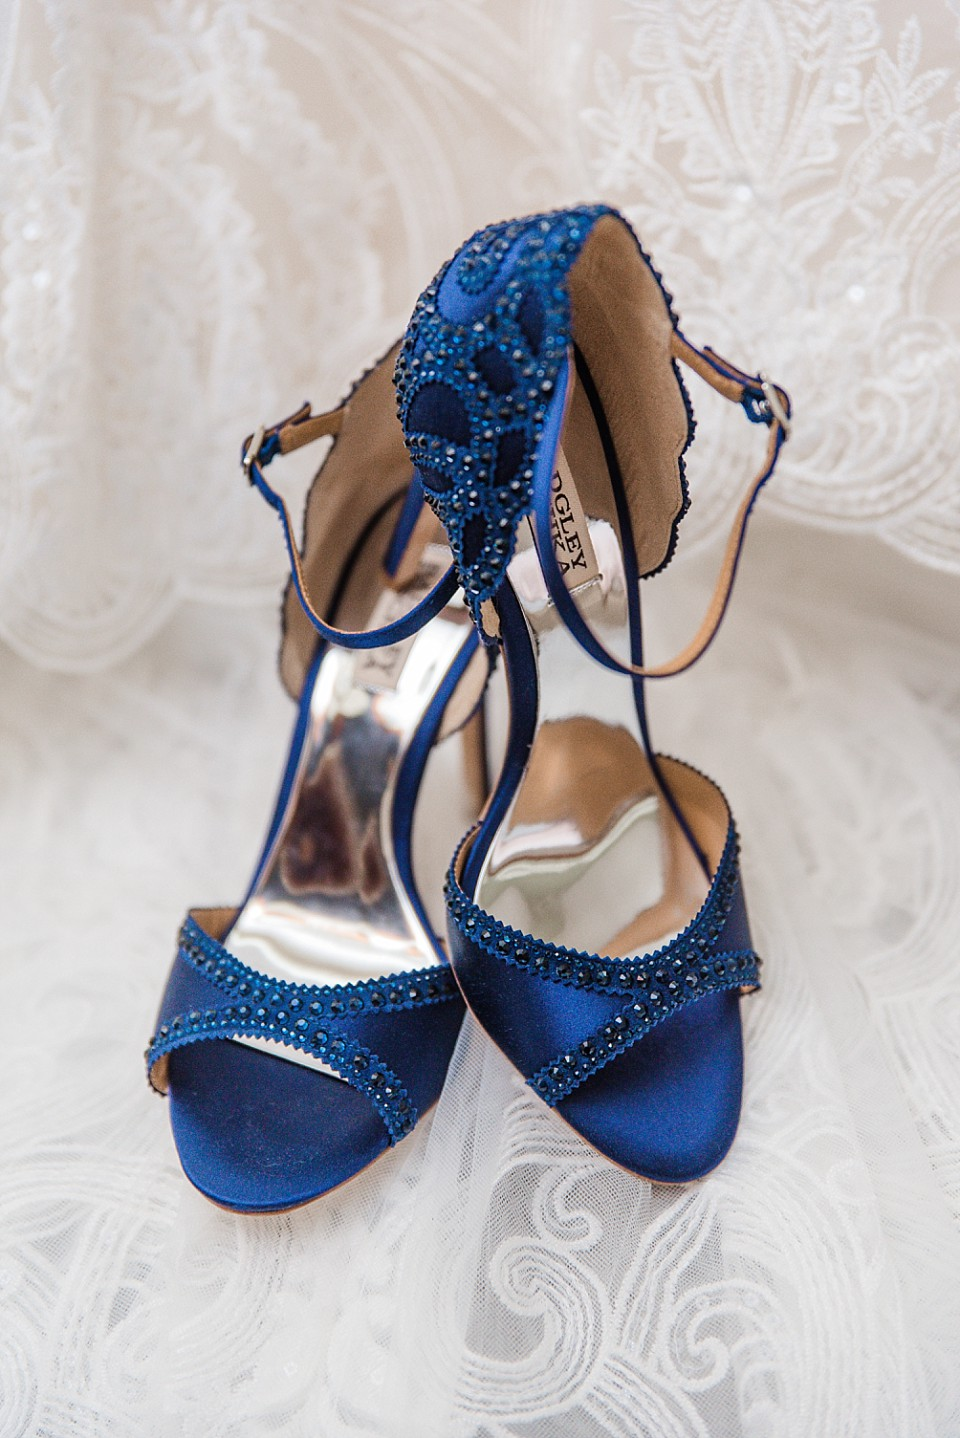 elegant navy blue wedding shoes San Diego photographer